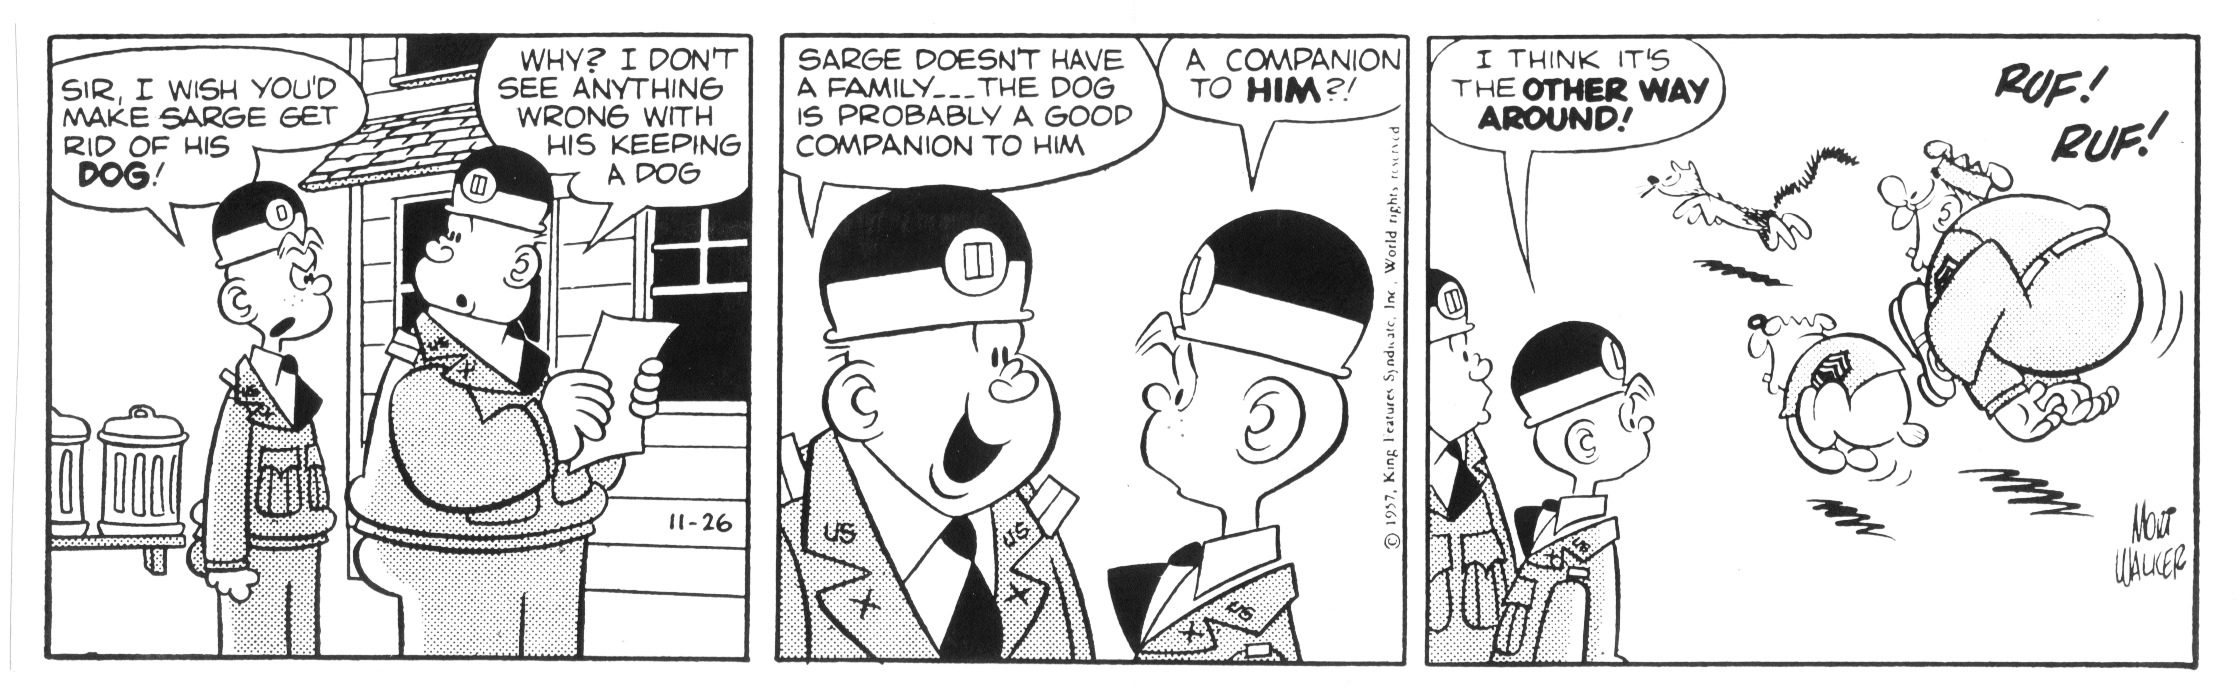 Beetle Bailey daily strip, November 26, 1957.